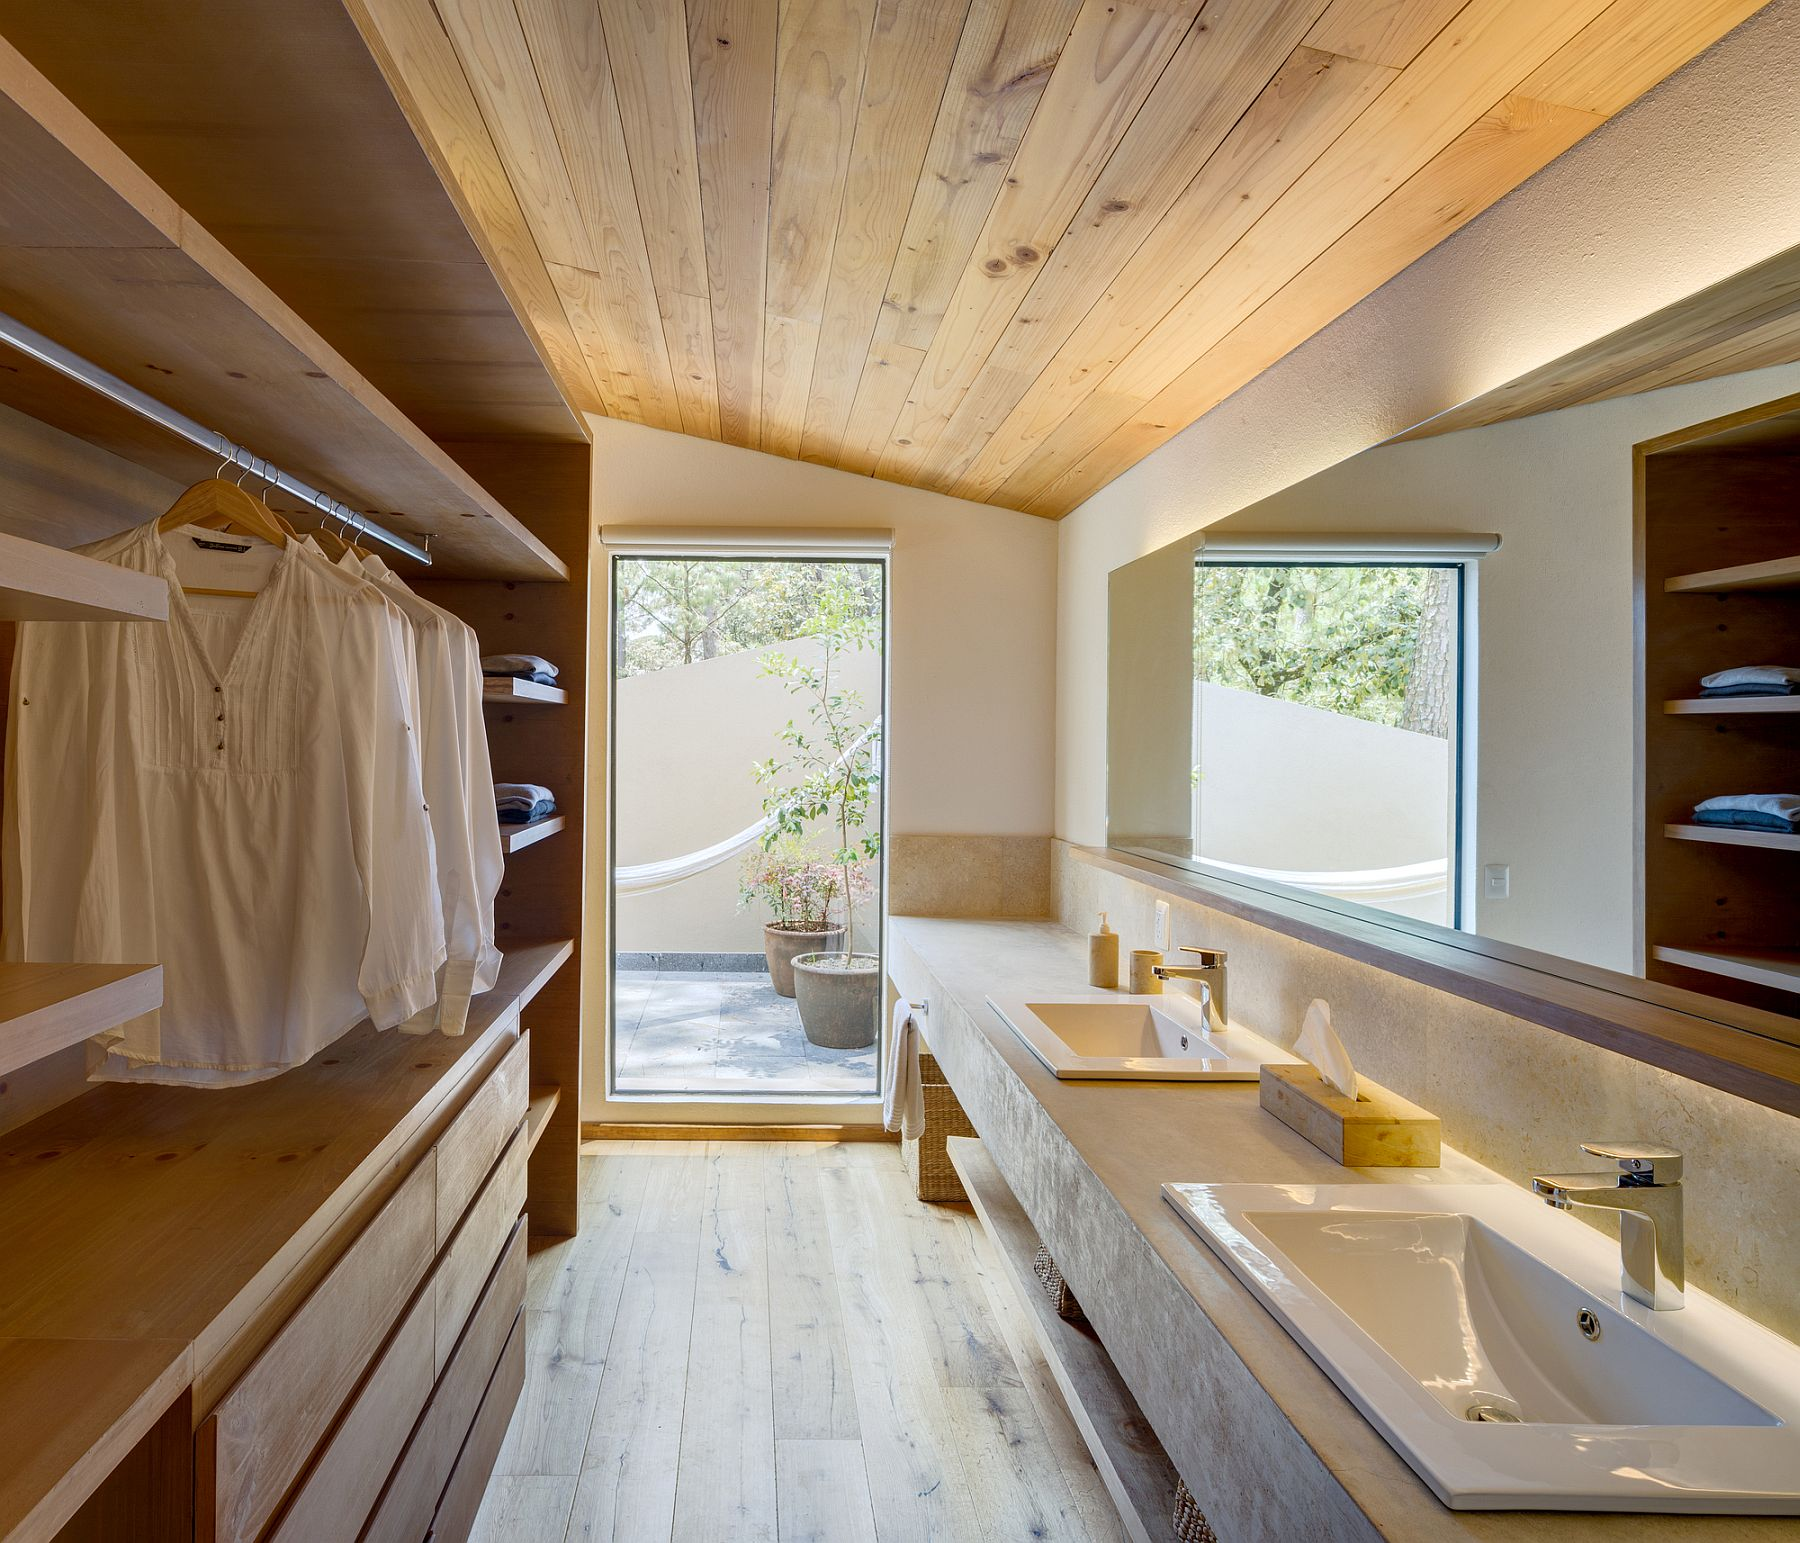 Breezy bathroom and wardrobe design